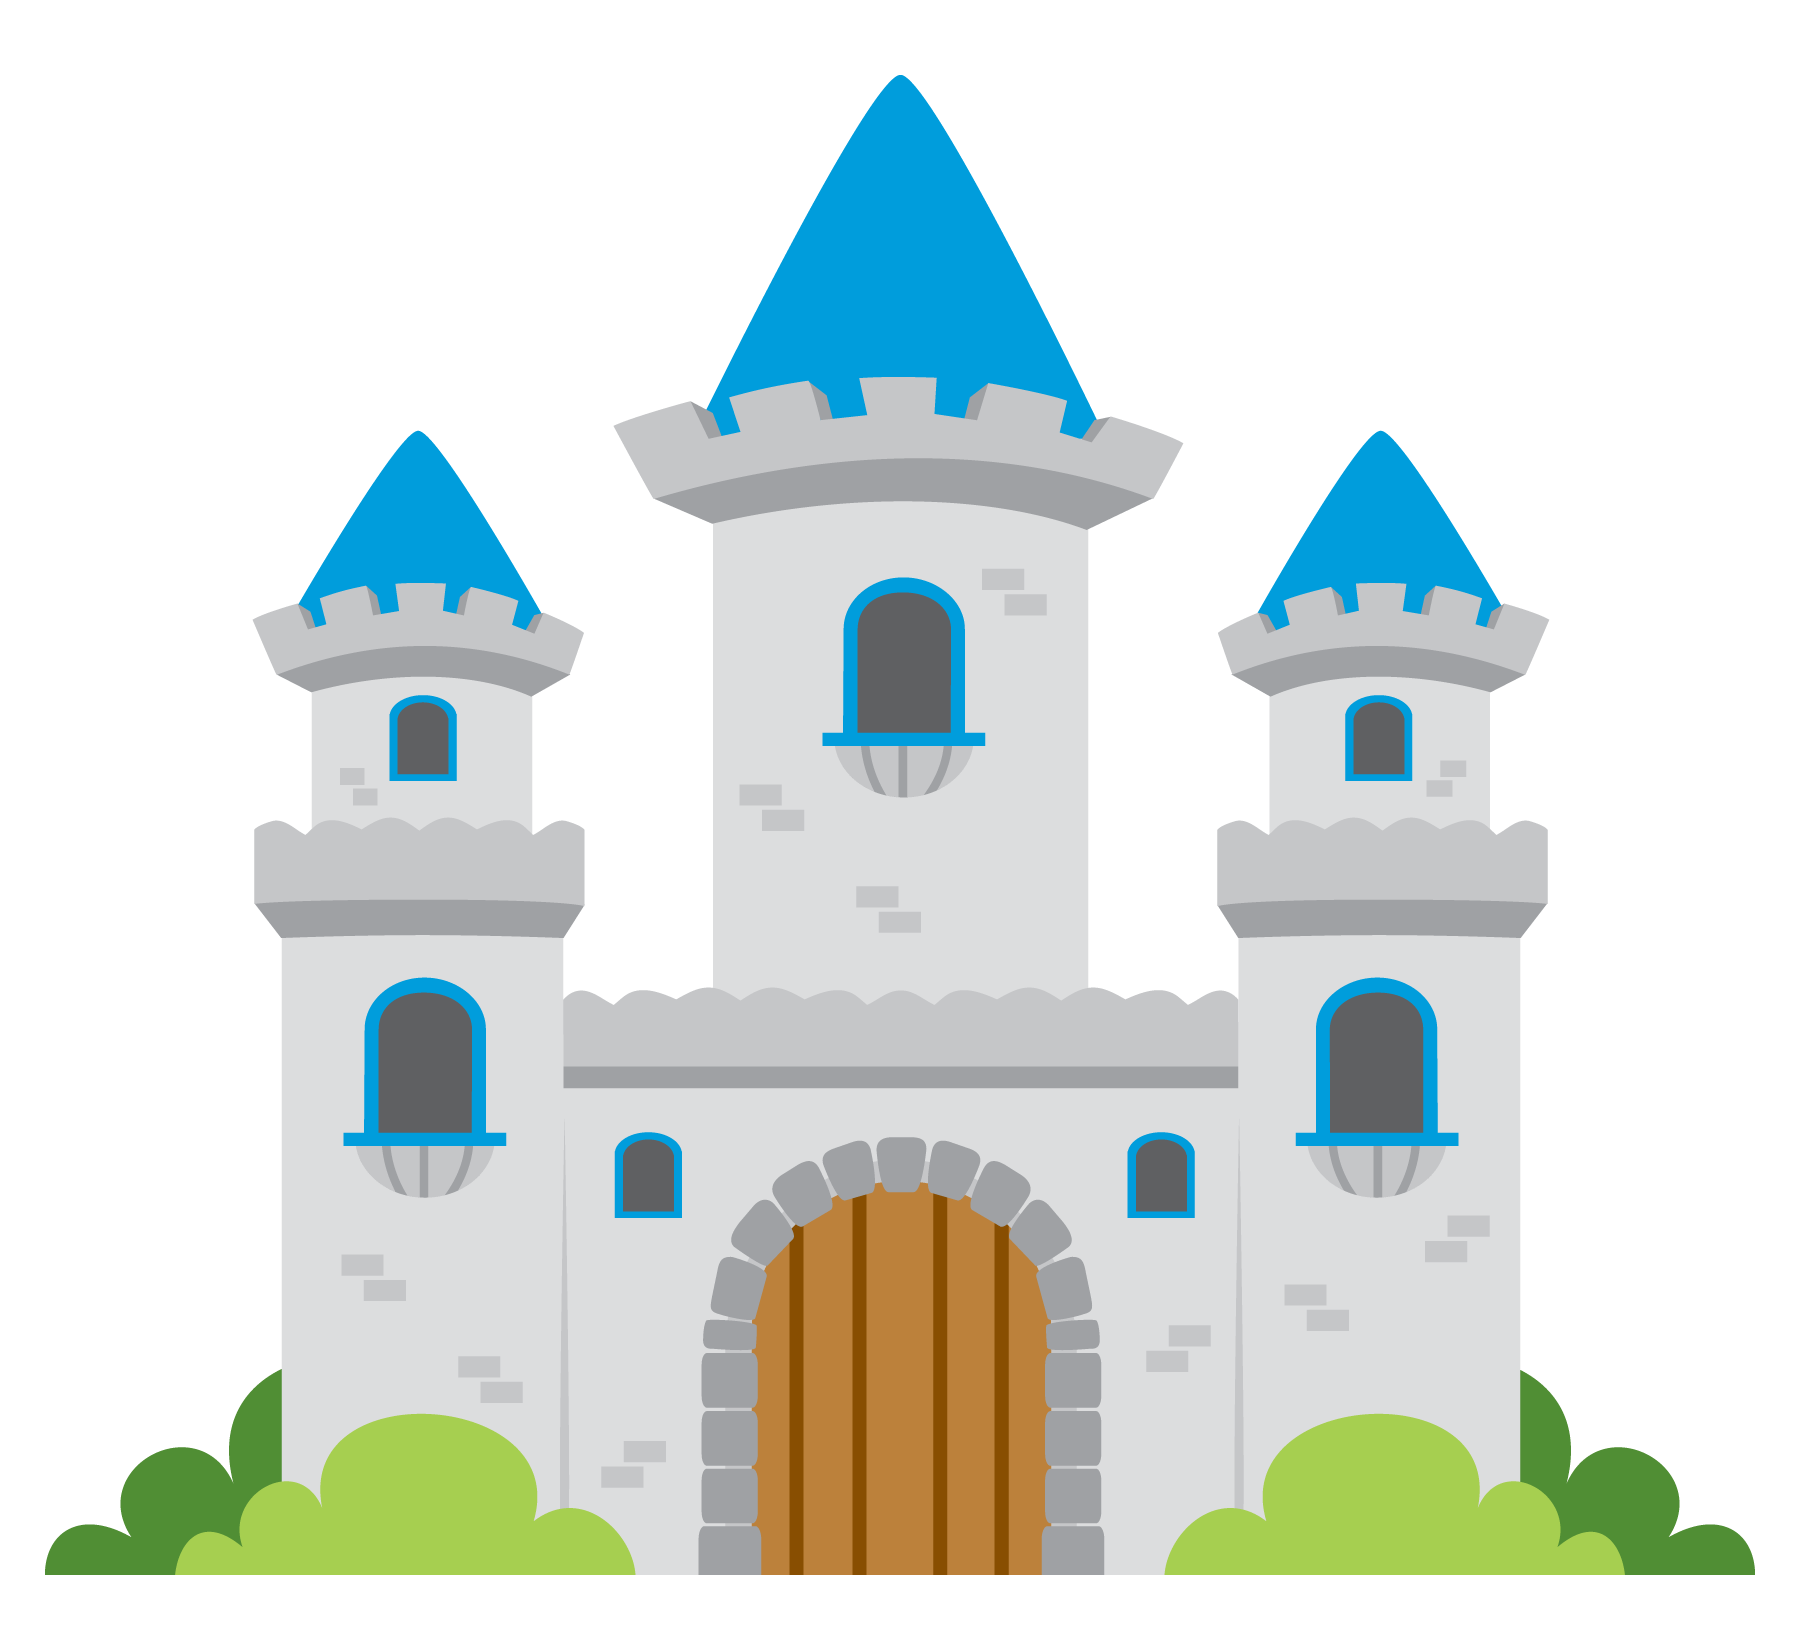 House project clipart image royalty free download Fairy Tale Castle Clip Art | Use these free images for your websites ... image royalty free download